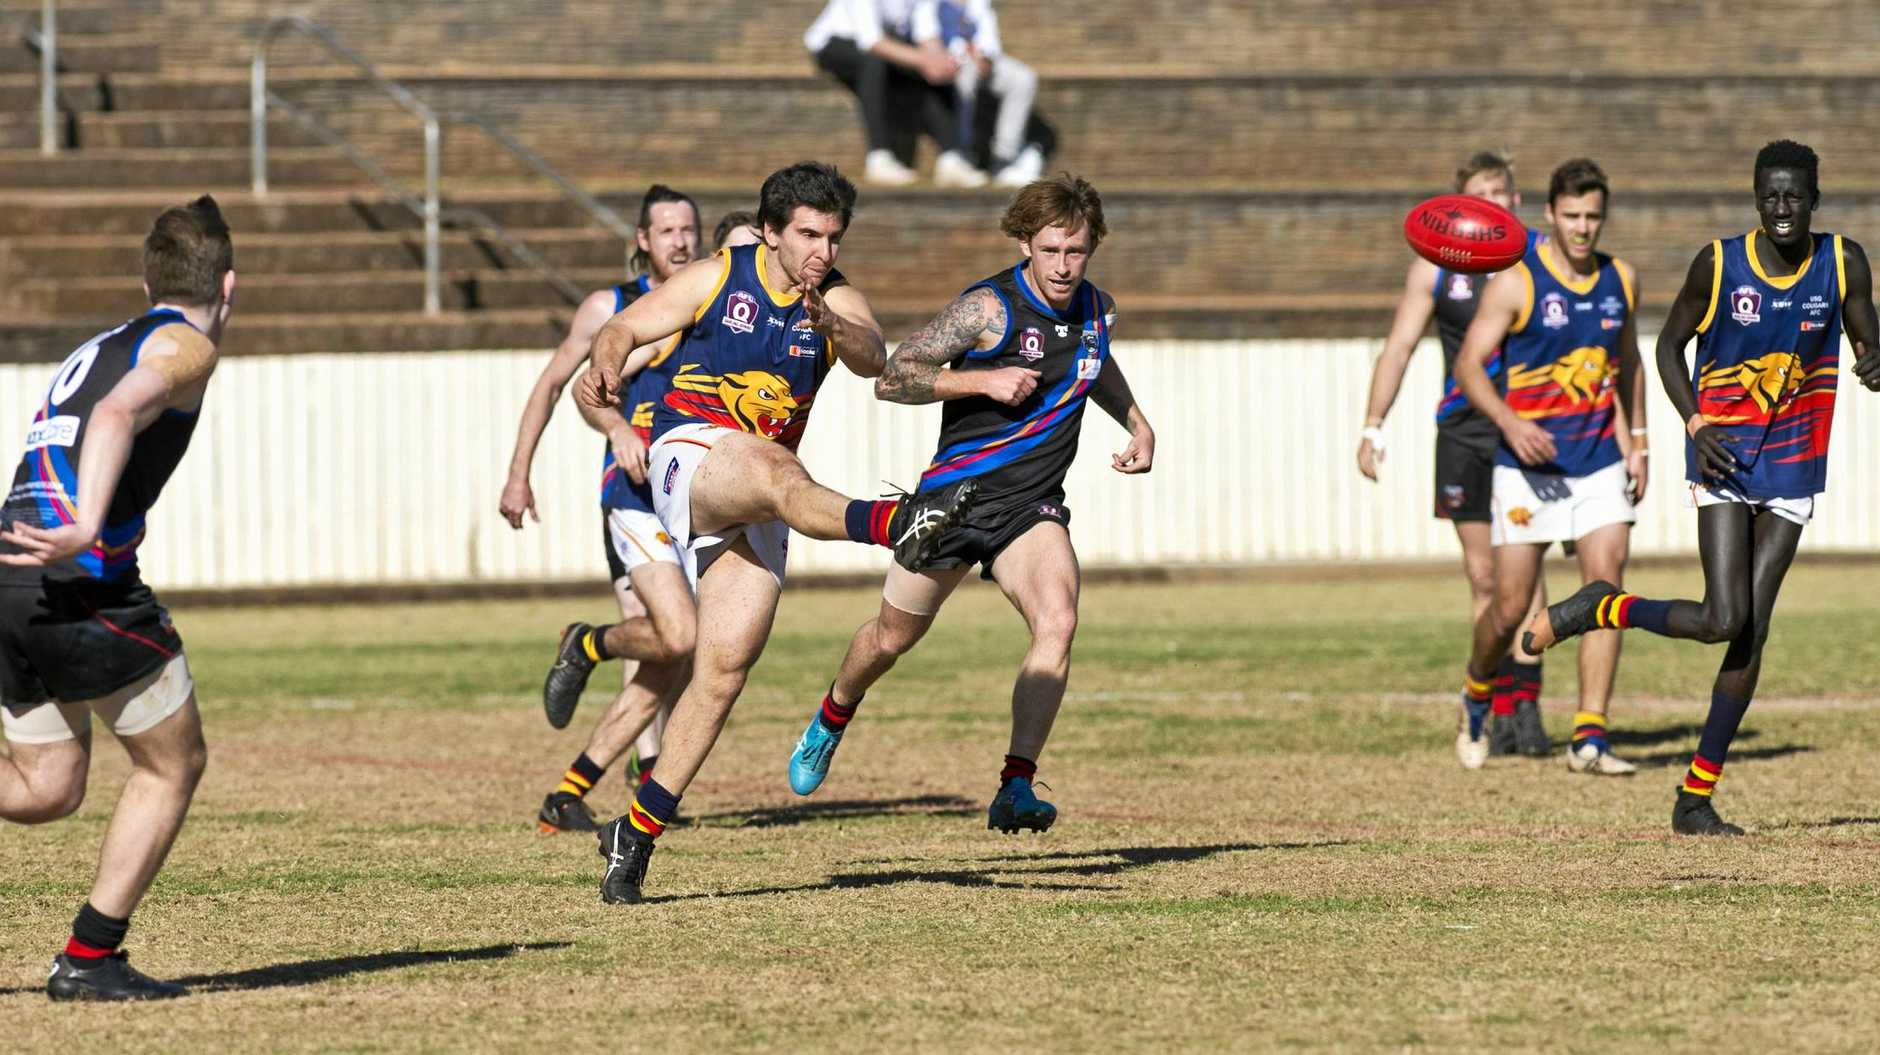 Ashley Harley for University Cougars against South Toowoomba Bombers in AFL Darling Downs round 15 at Heritage Oval, Saturday, August 11, 2018.